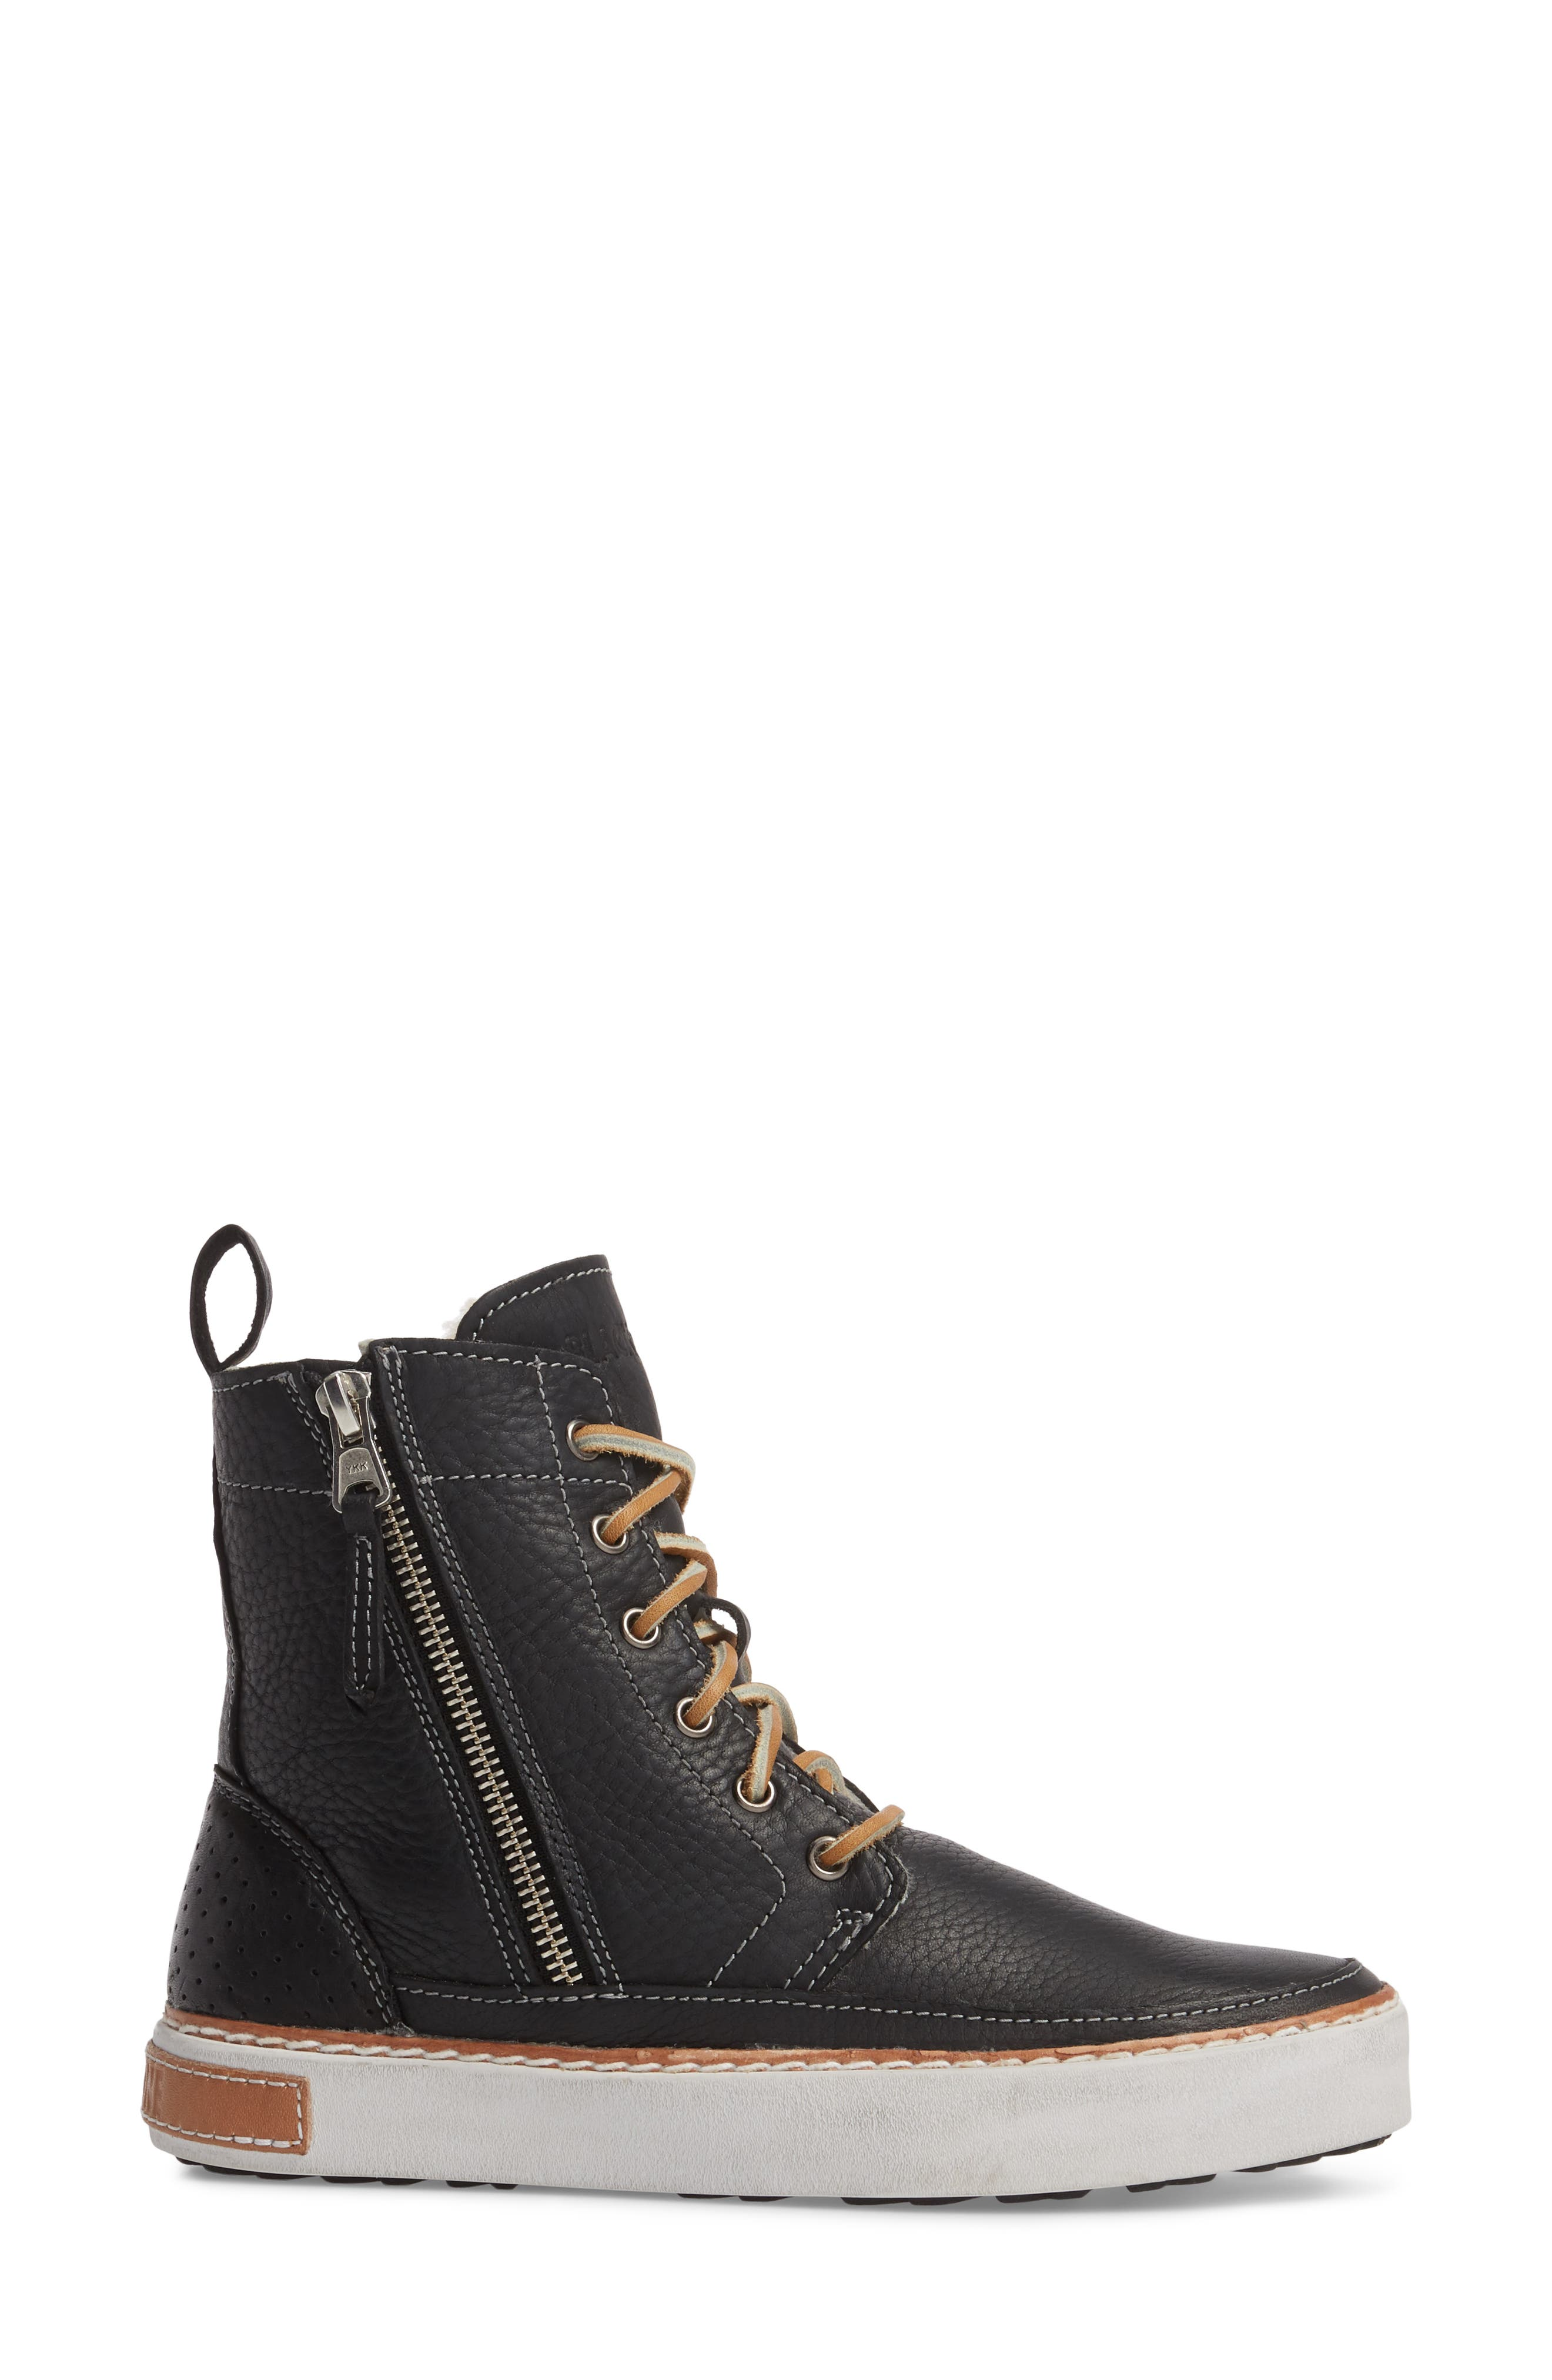 'CW96' Genuine Shearling Lined Sneaker Boot,                             Alternate thumbnail 3, color,                             BLACK LEATHER